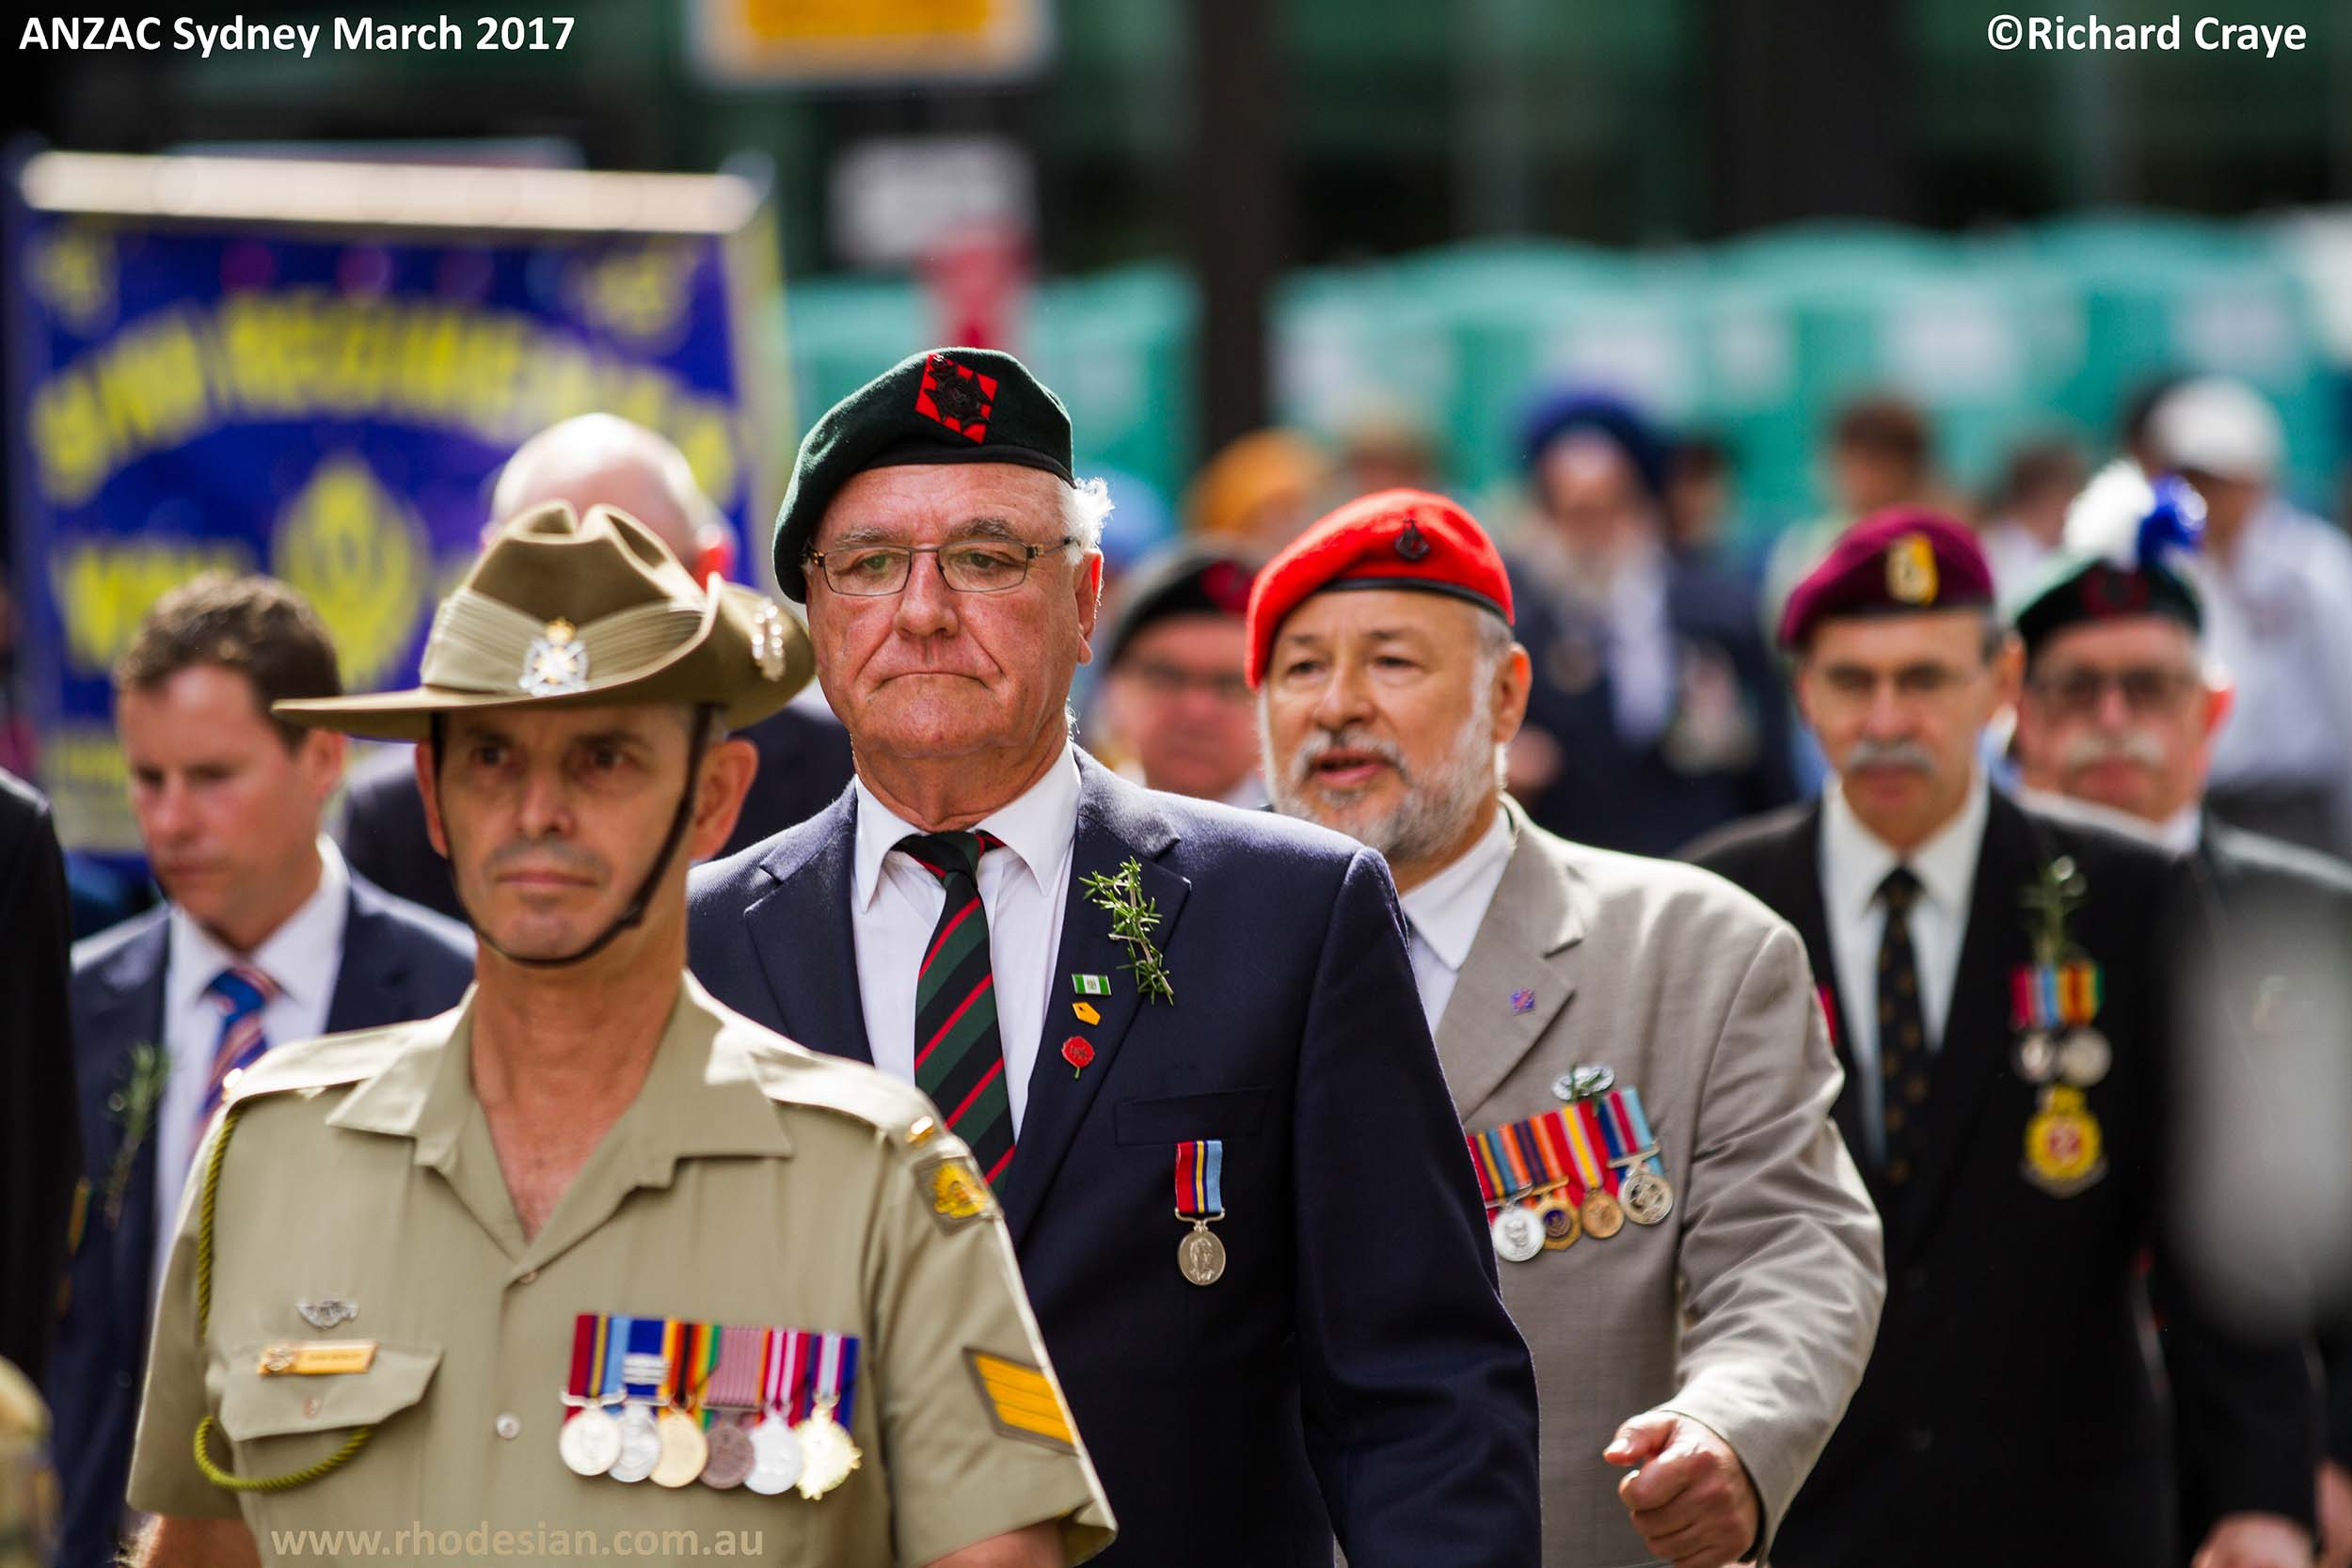 Australian reserve member with Rhodesian veterans in ANZAC Day March in Sydney in 2017 posted on www.rhodesian.com.au